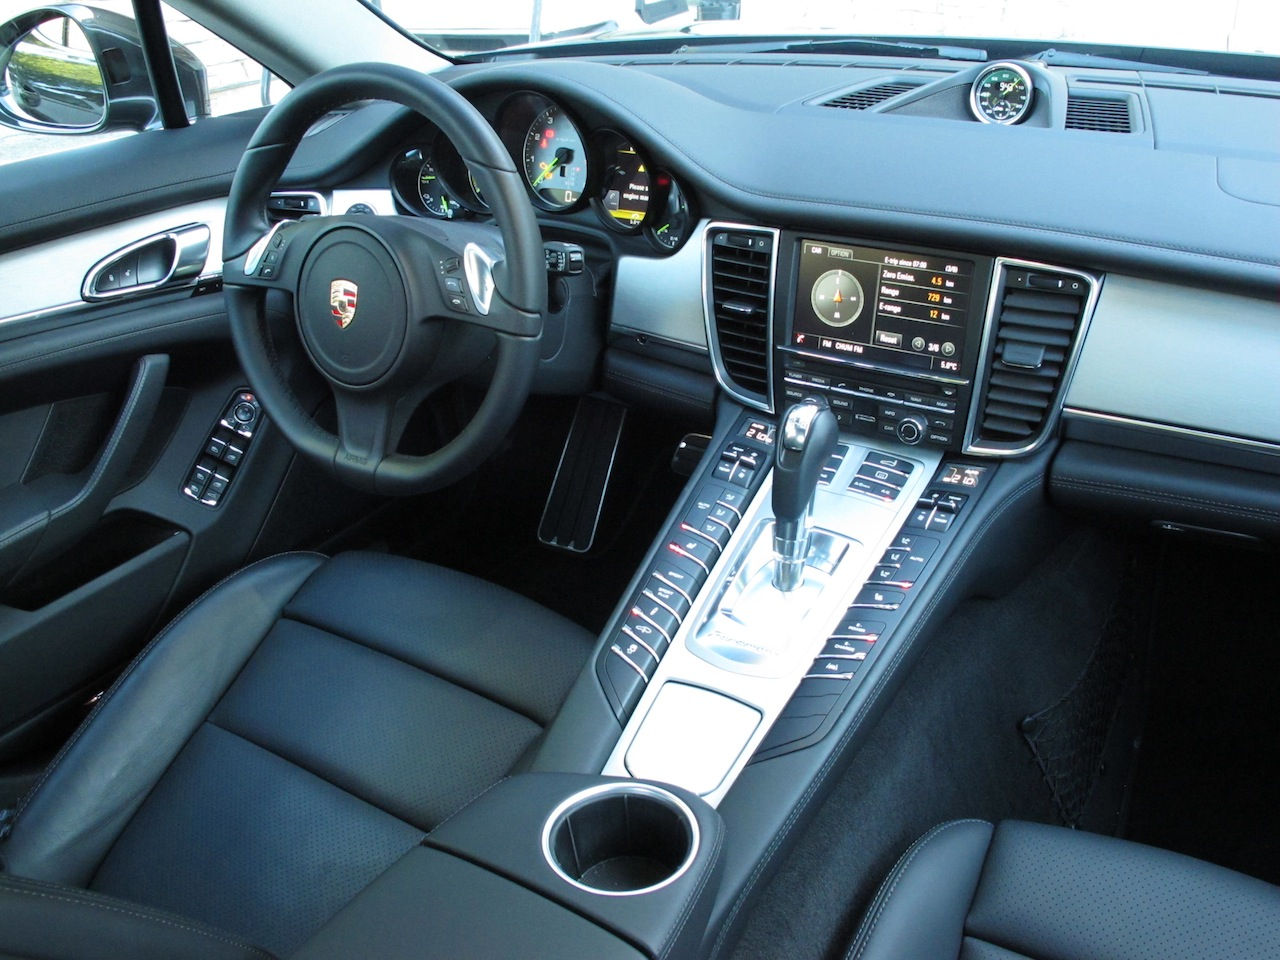 2014 Porsche Panamera S E Hybrid Black Interior Dashboard View With Steering Wheel